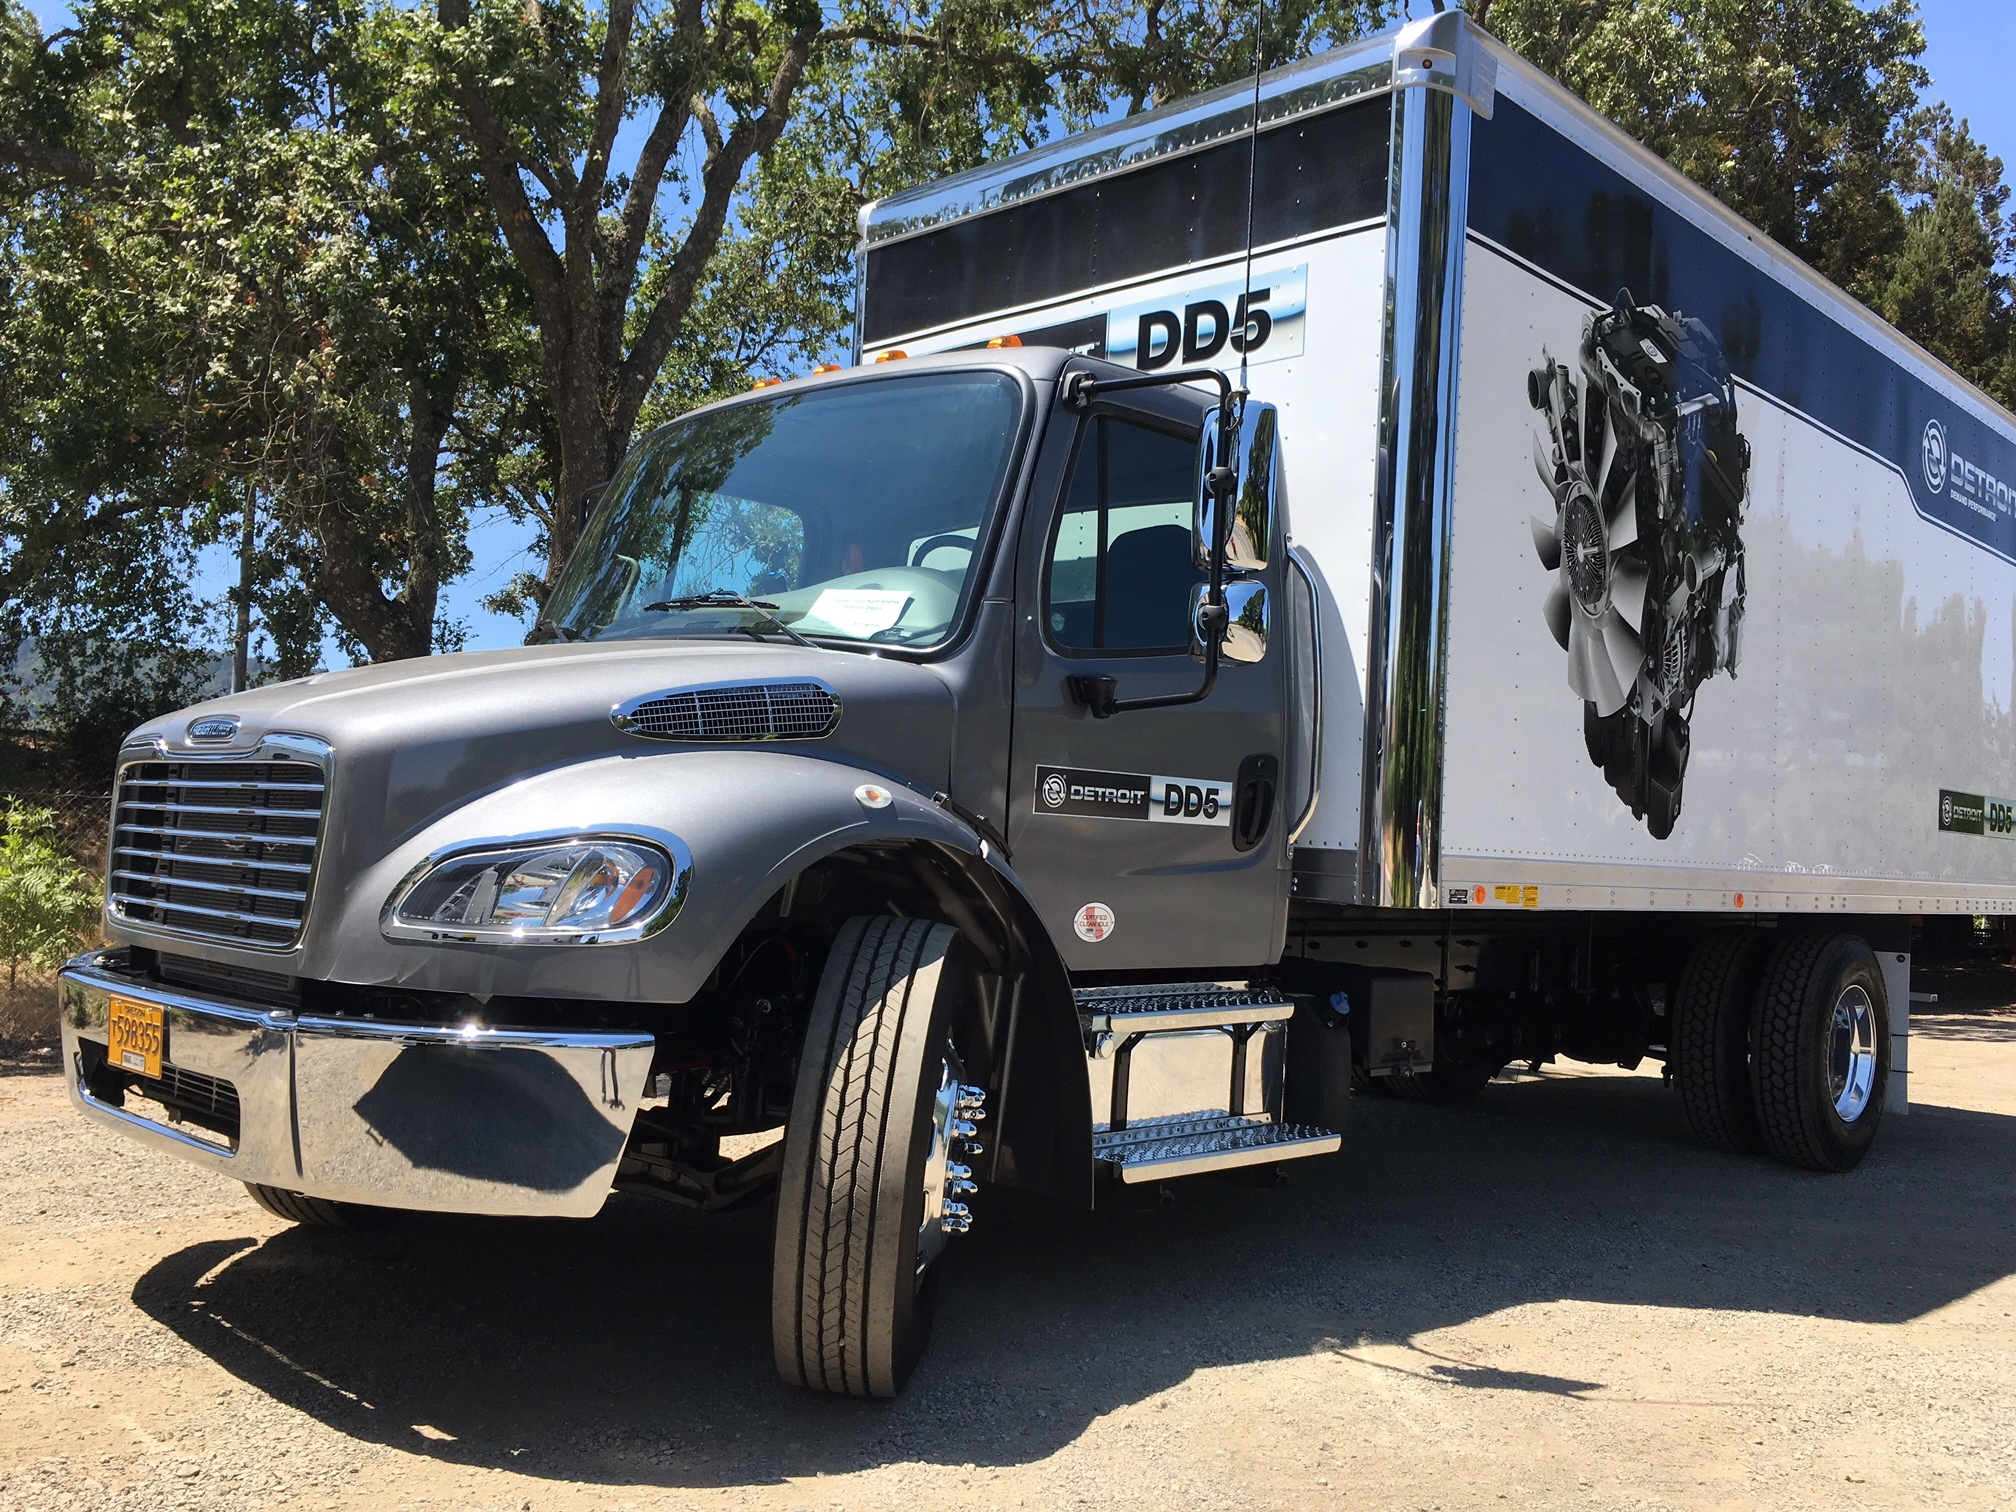 We drove this DD5-equipped Freightliner M2 106.